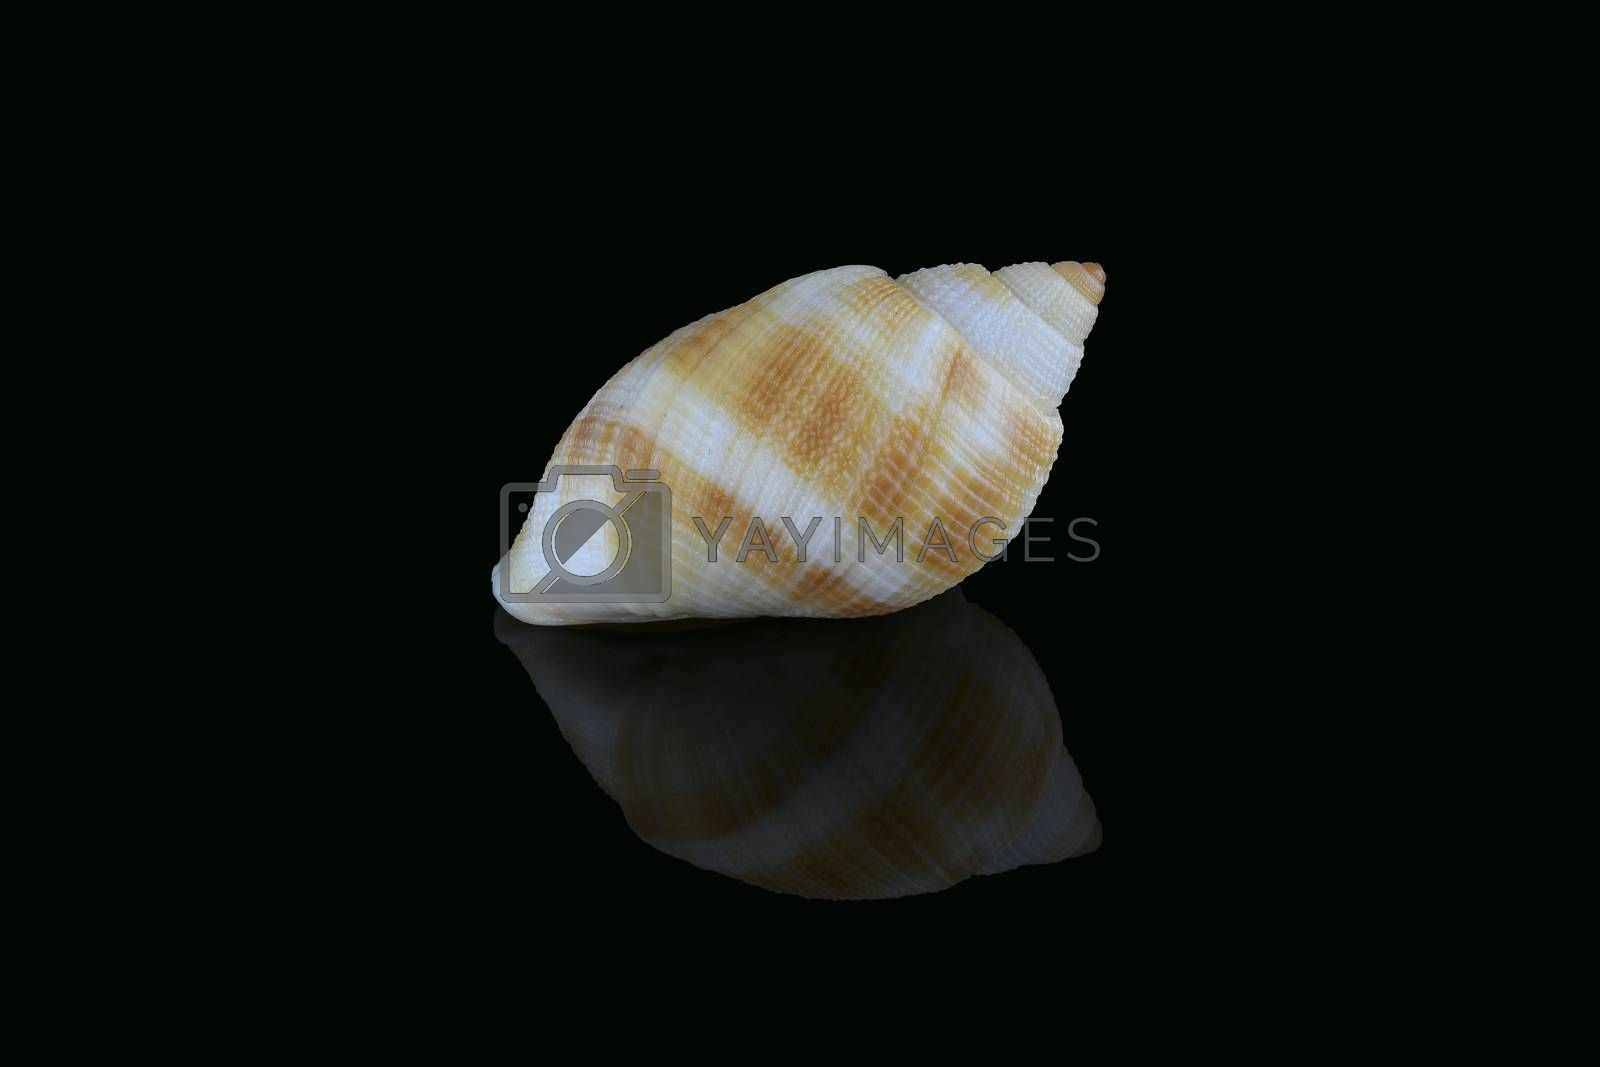 Royalty free image of Nassarius seashell, Dubai, UAE by GABIS